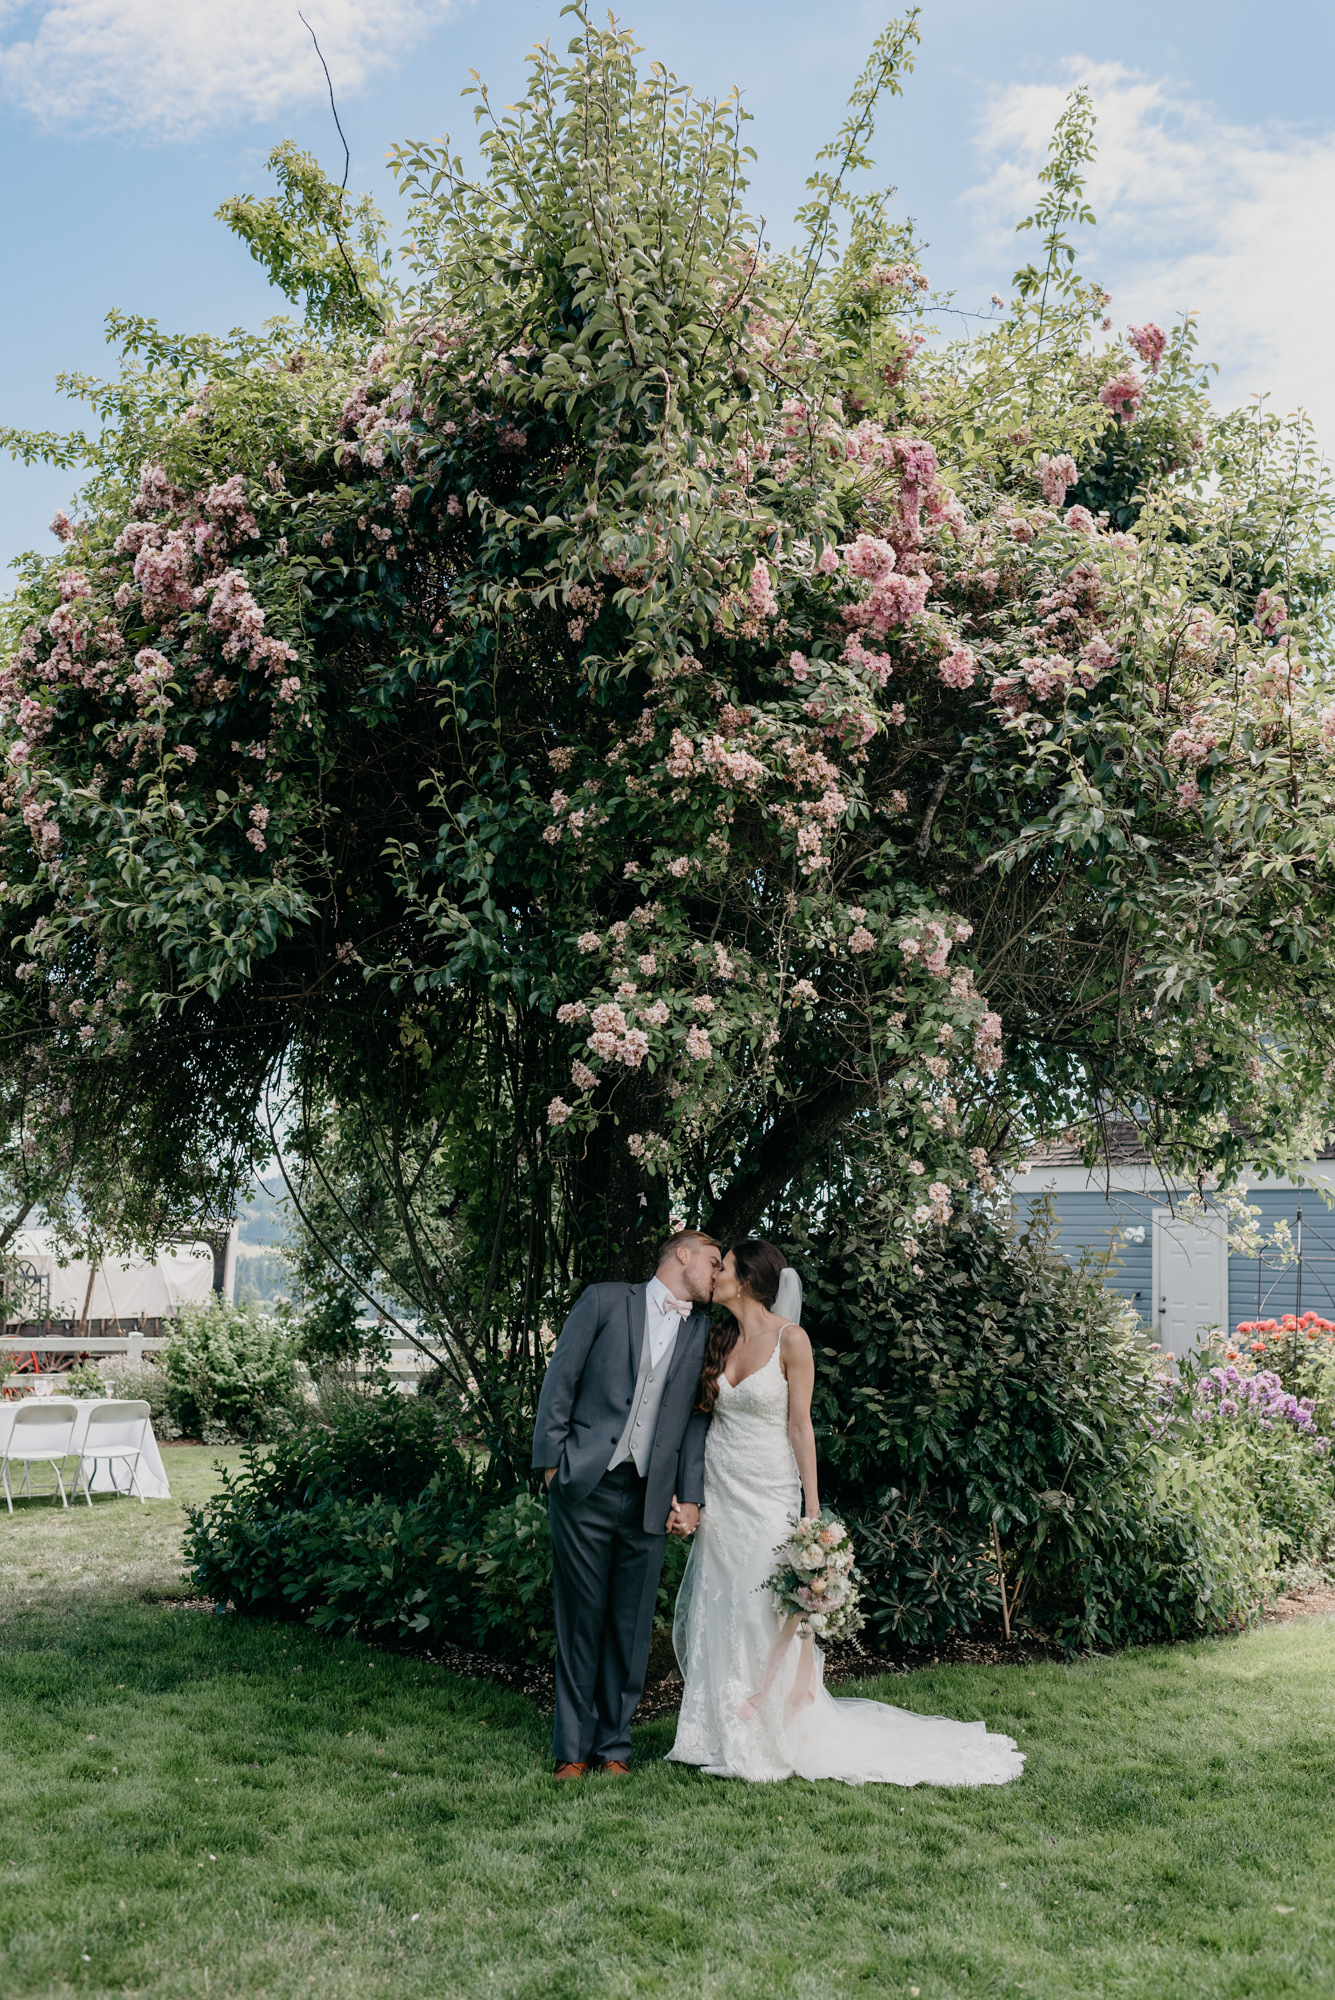 85-lake-oswego-wedding-portland-couple-rose-tree.jpg